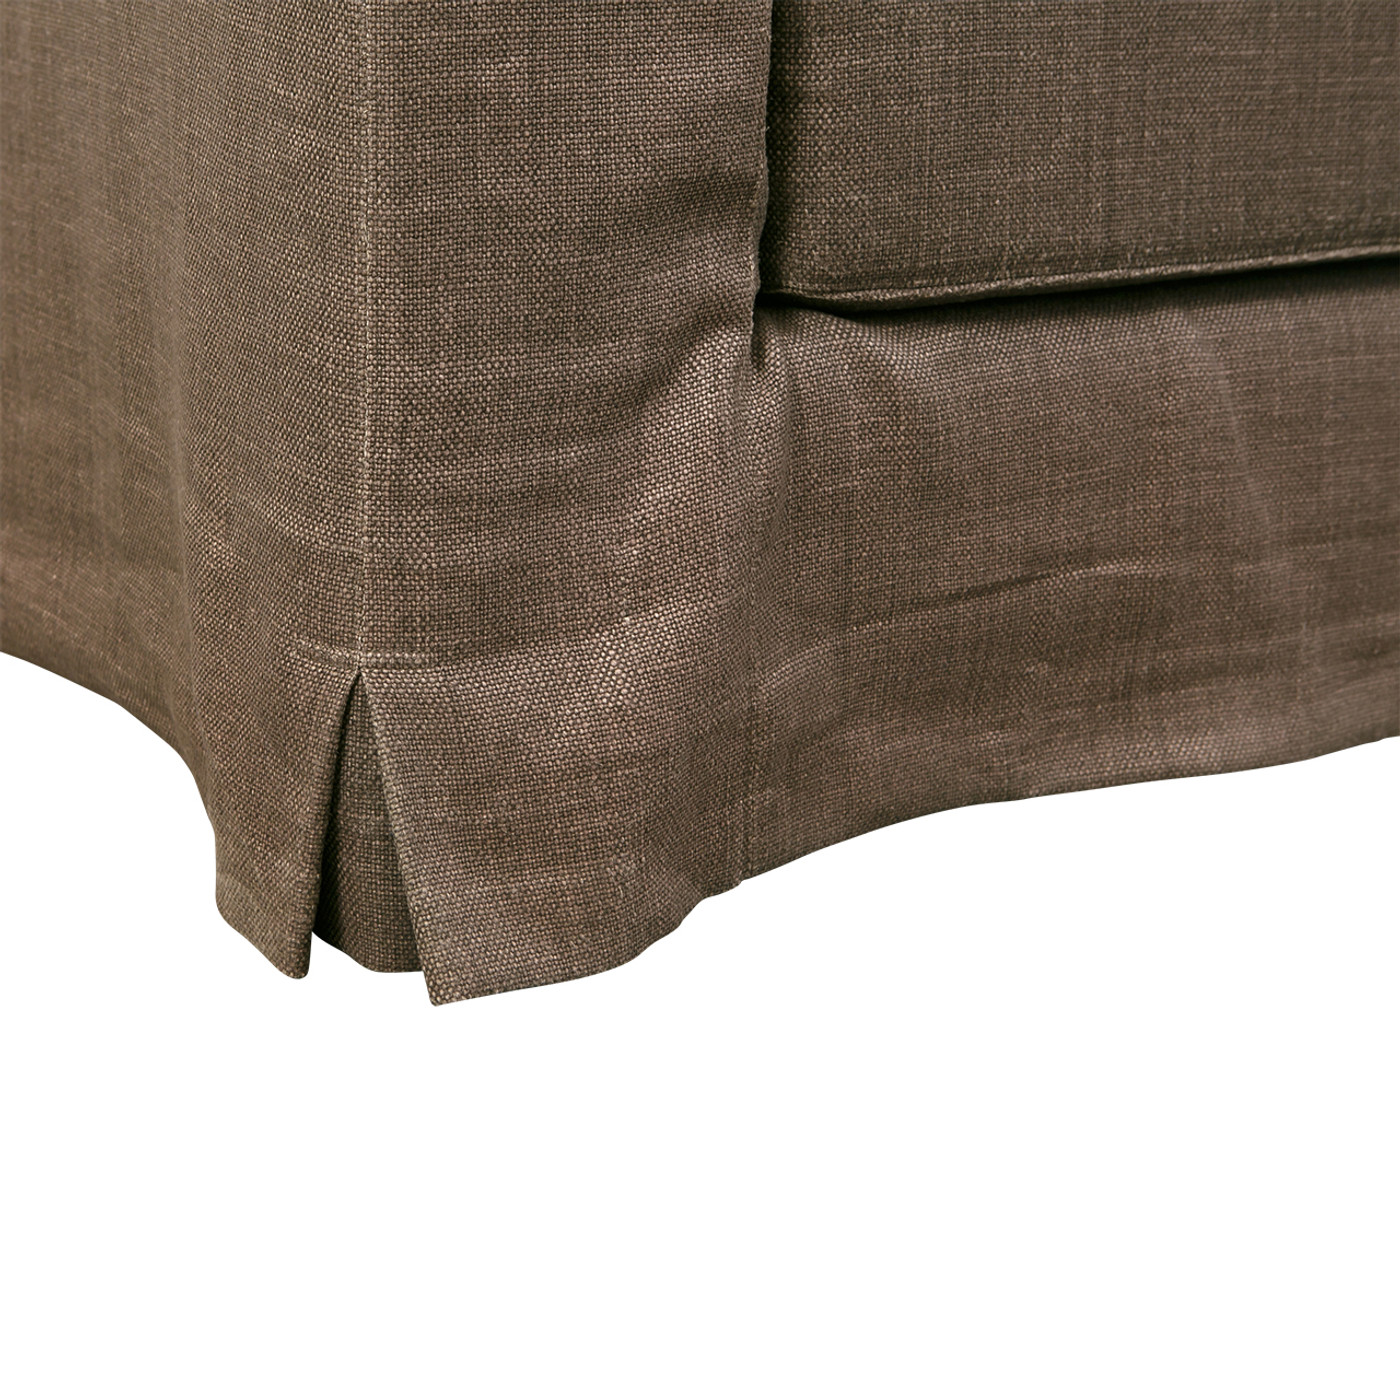 Pantaleria Sofa by Christian Liaigre for Holly Hunt